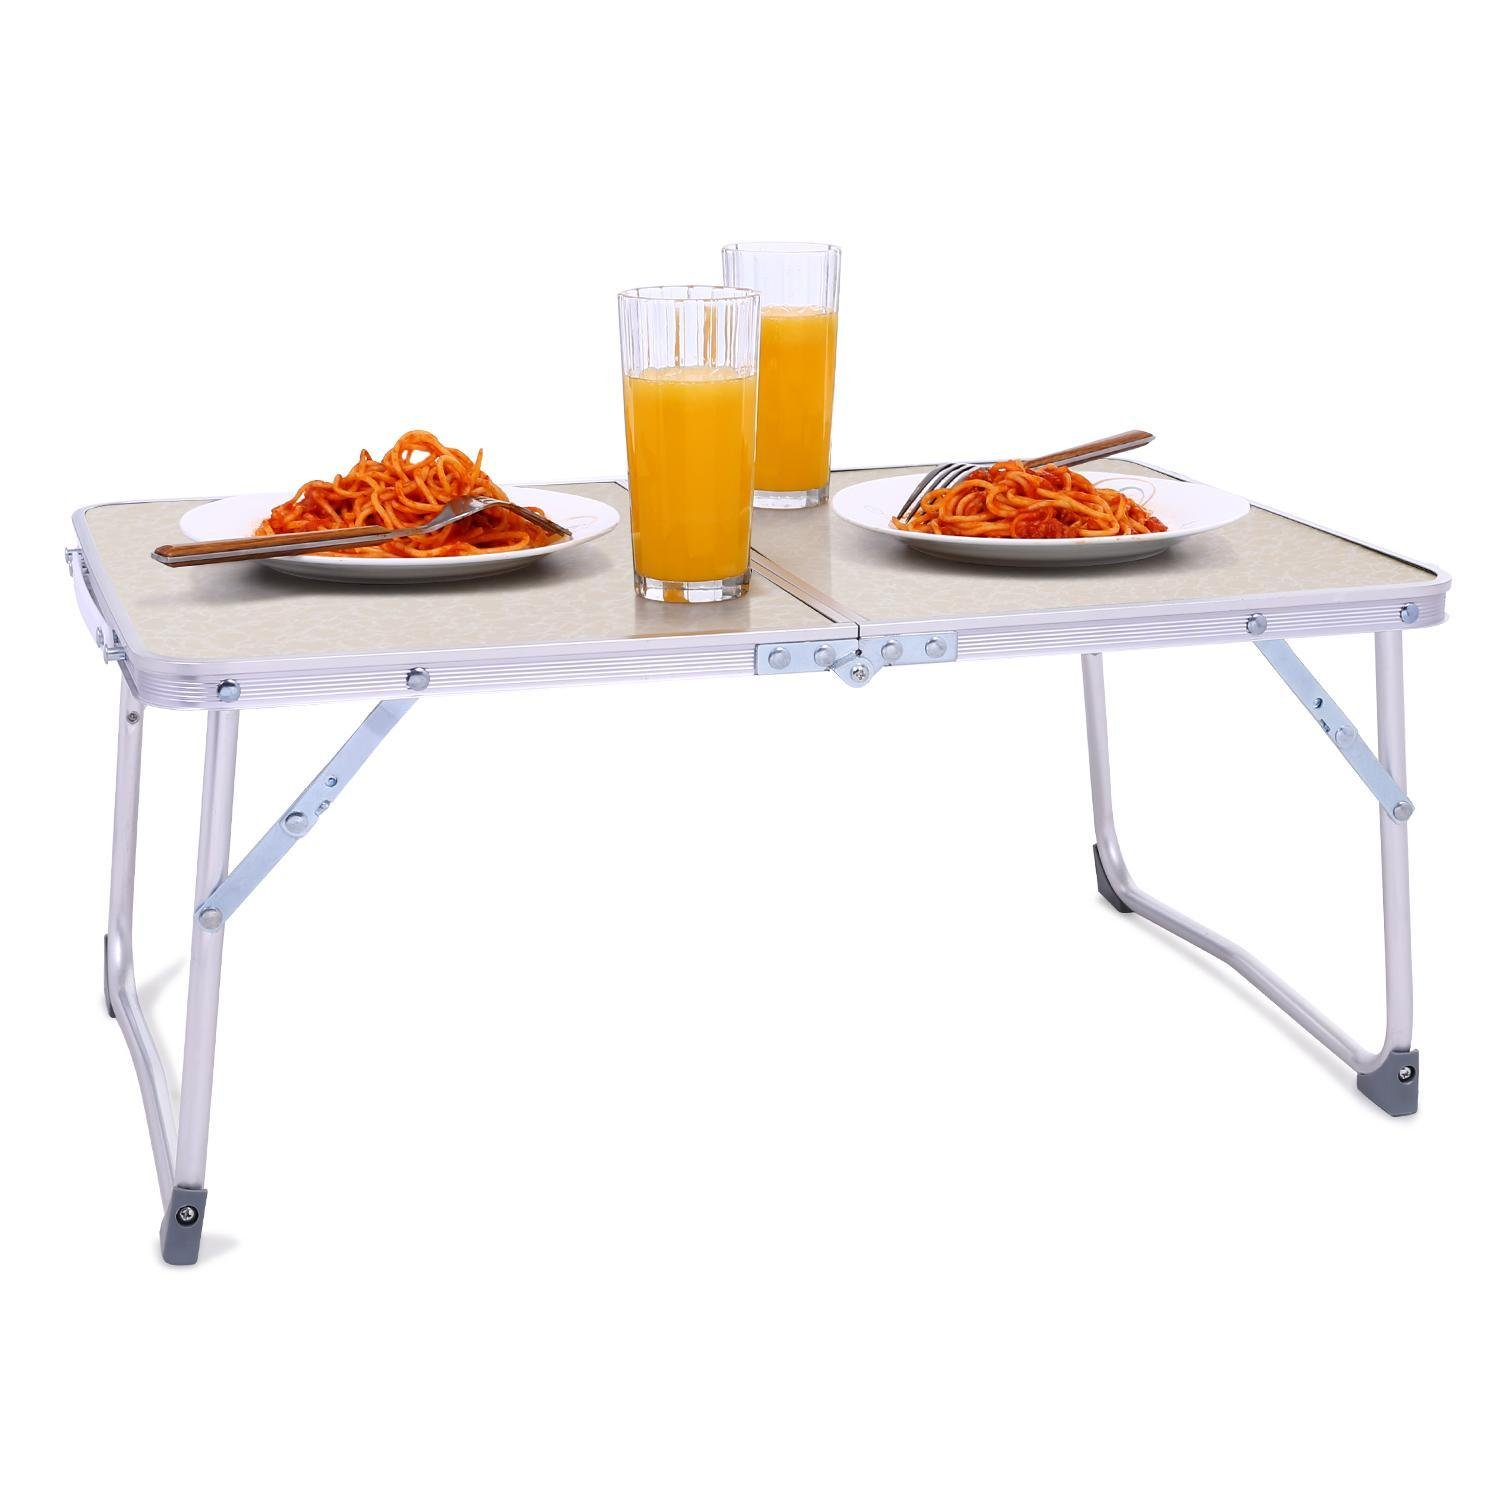 Rapesee Folding Aluminum Table Outdoor Picnic Camping Table 4 Person Portable Adjustable Family Outside Party Dining Desk, 23.74 x 17.80 Inch (White)